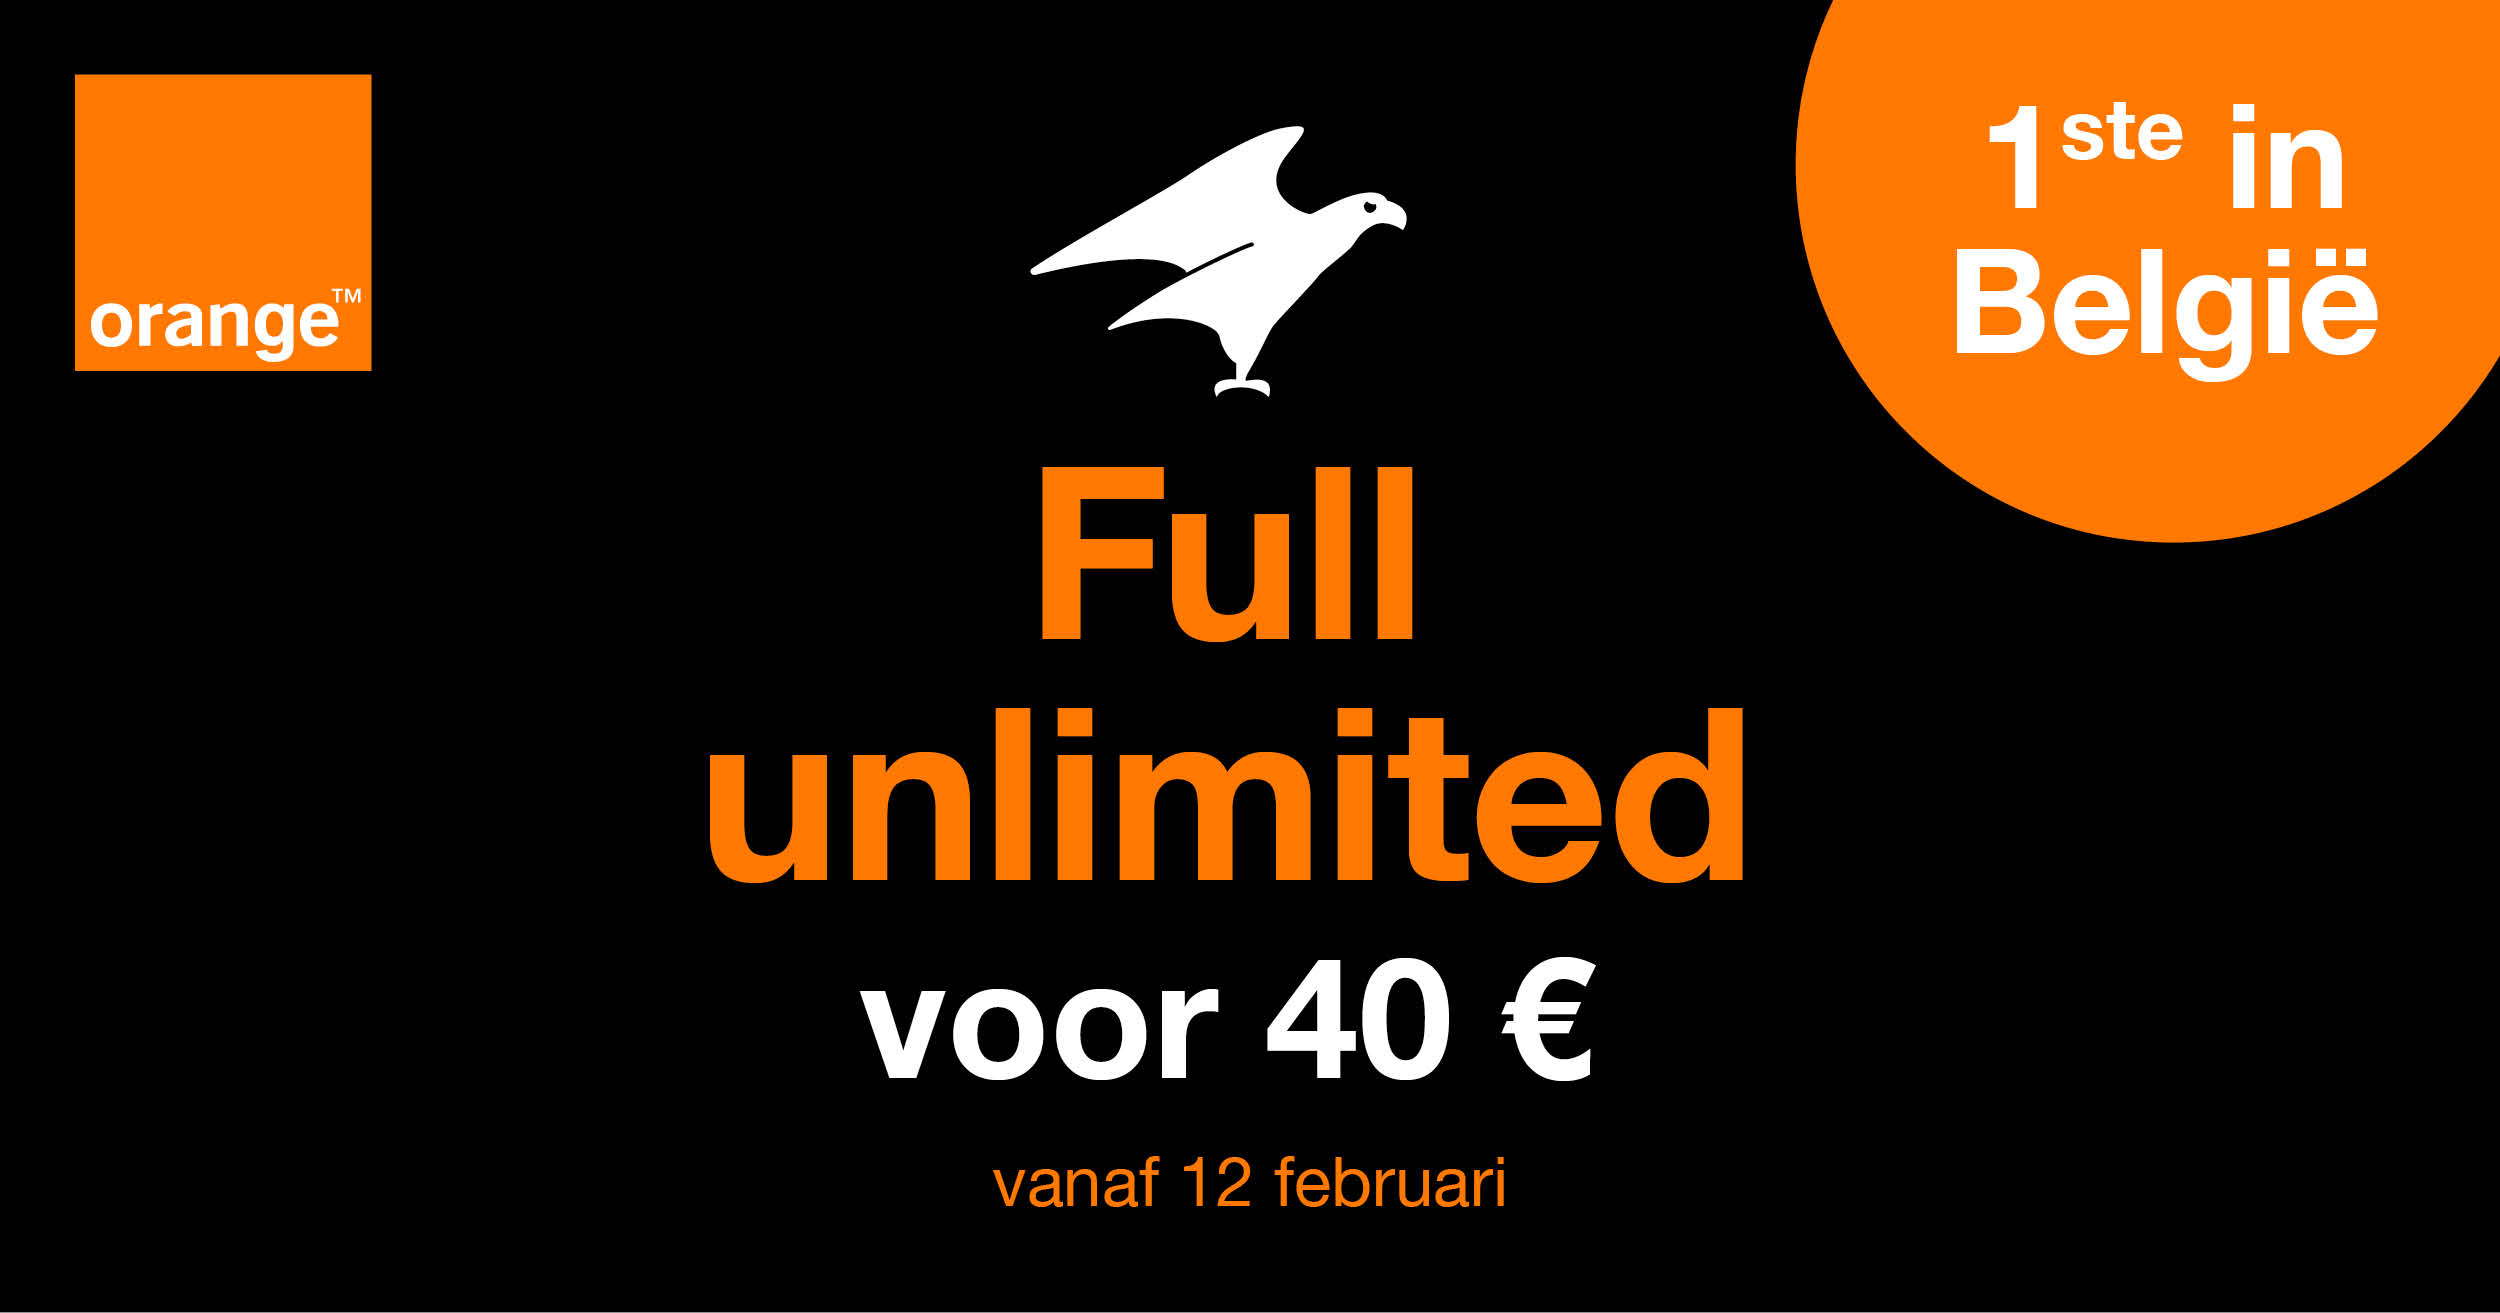 oranje unlimited 4G